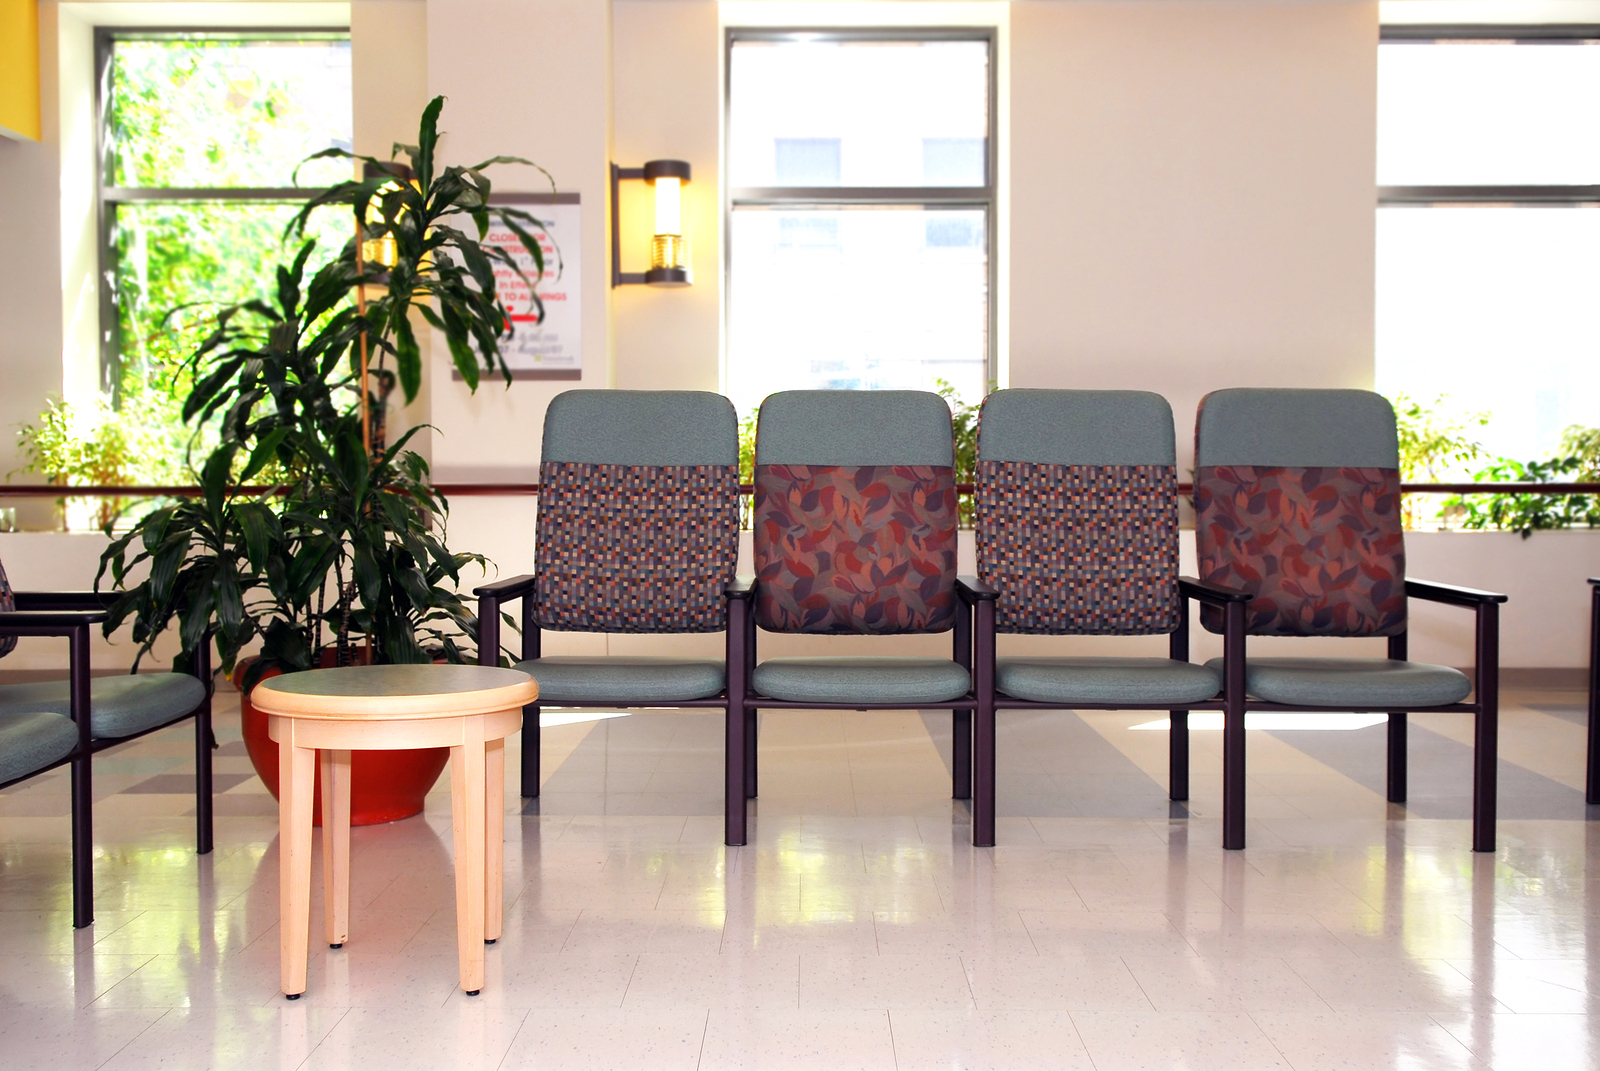 A Better Janitorial Service - Office and Building Cleaning